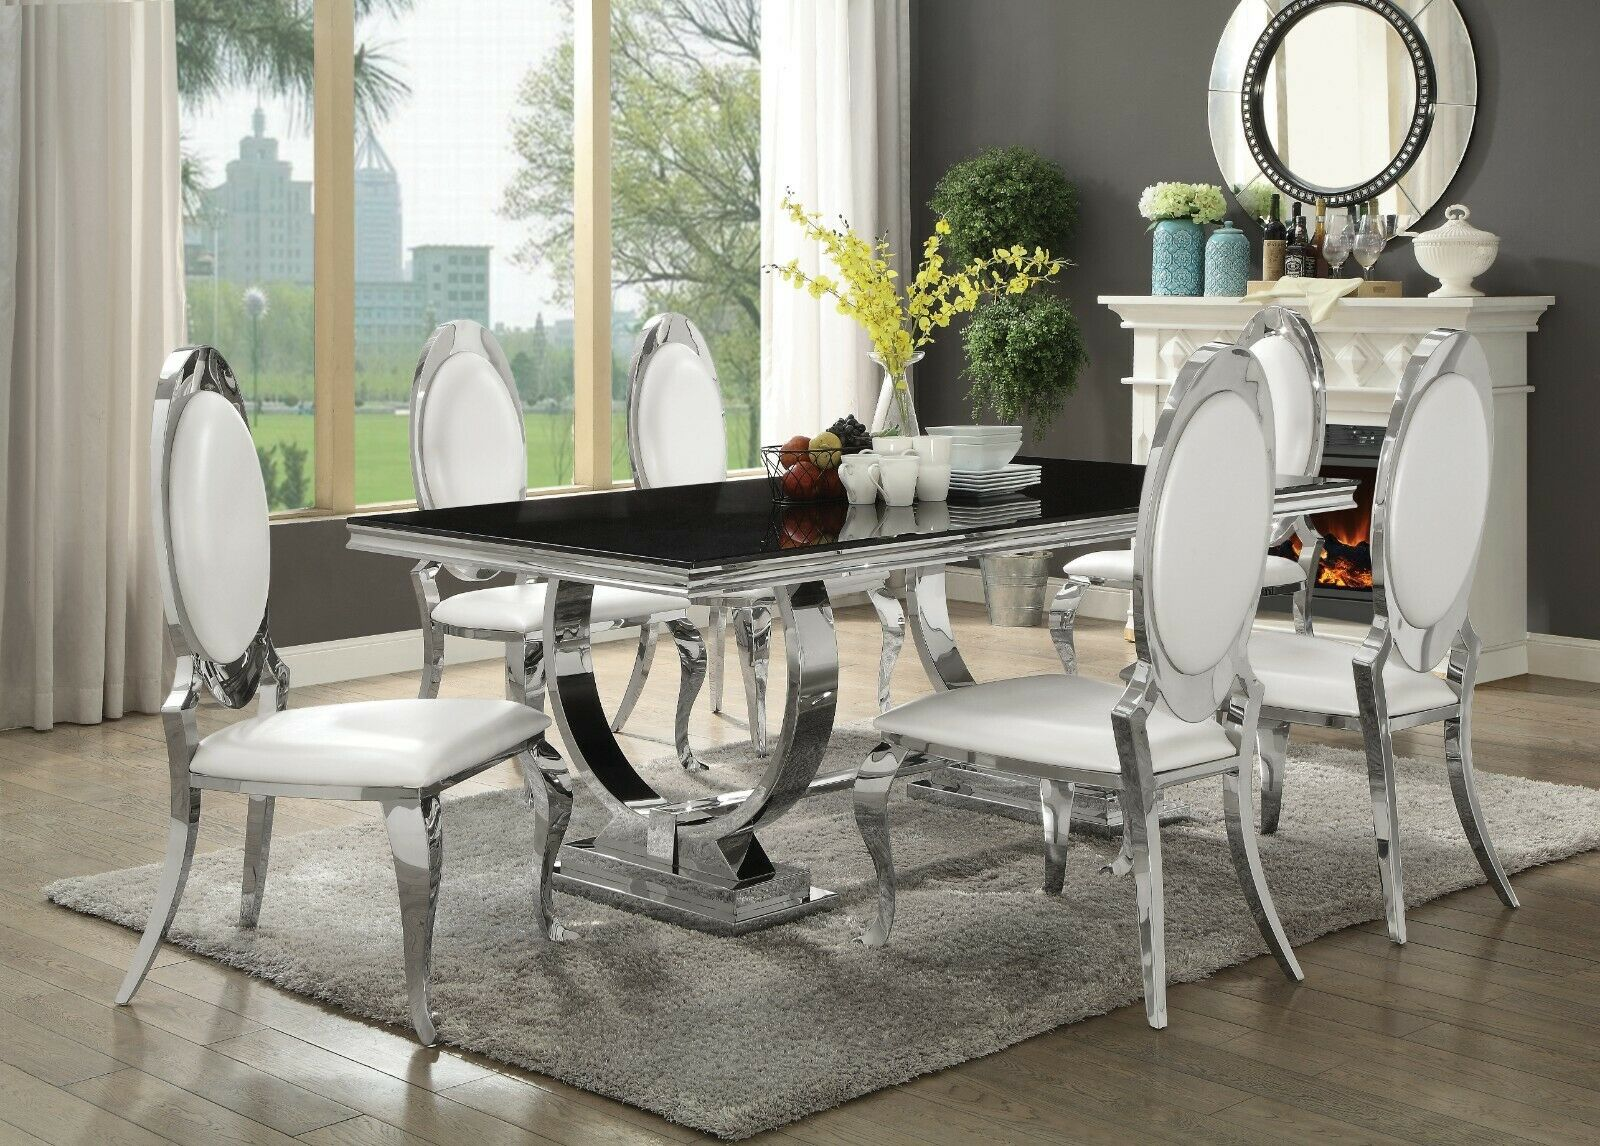 Modern 7 Piece Dining Set Rectangular Table Black Glass Stainless Steel Chrome For Sale Online